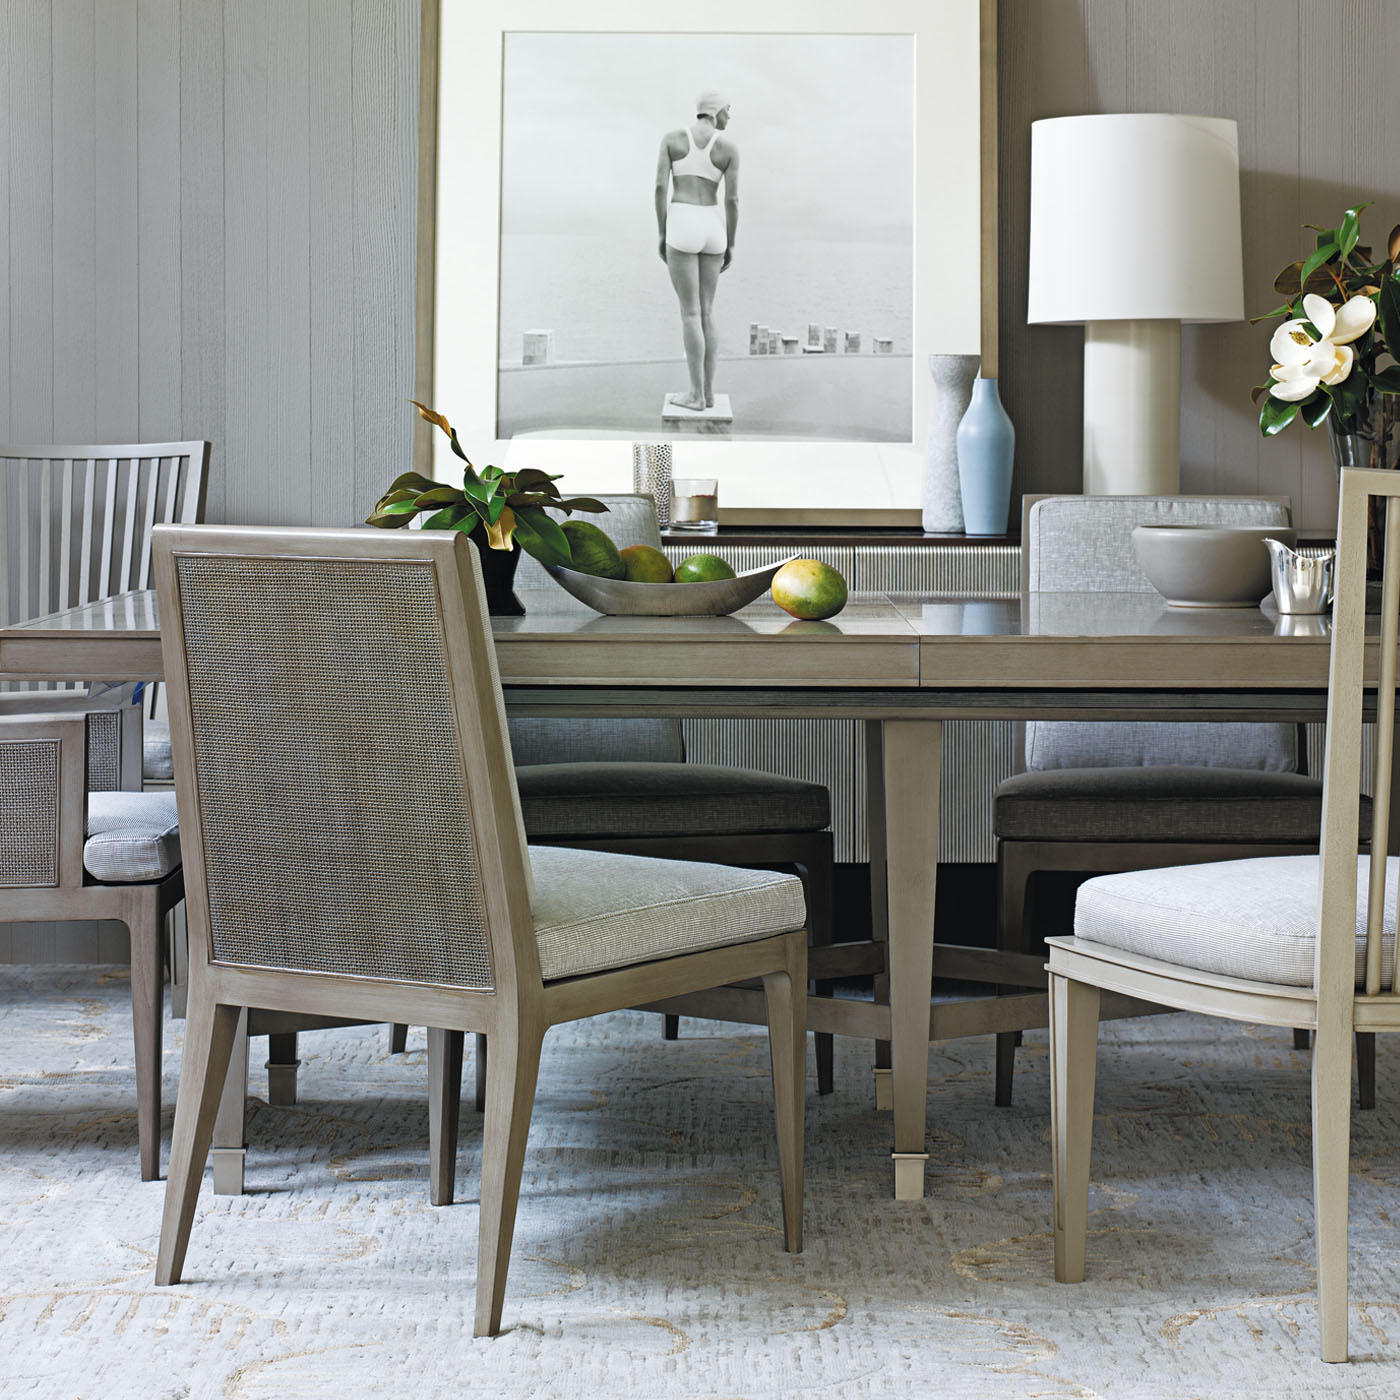 Modern Dining Room Furniture Accessories: Modern Dining Room Furniture & Accessories